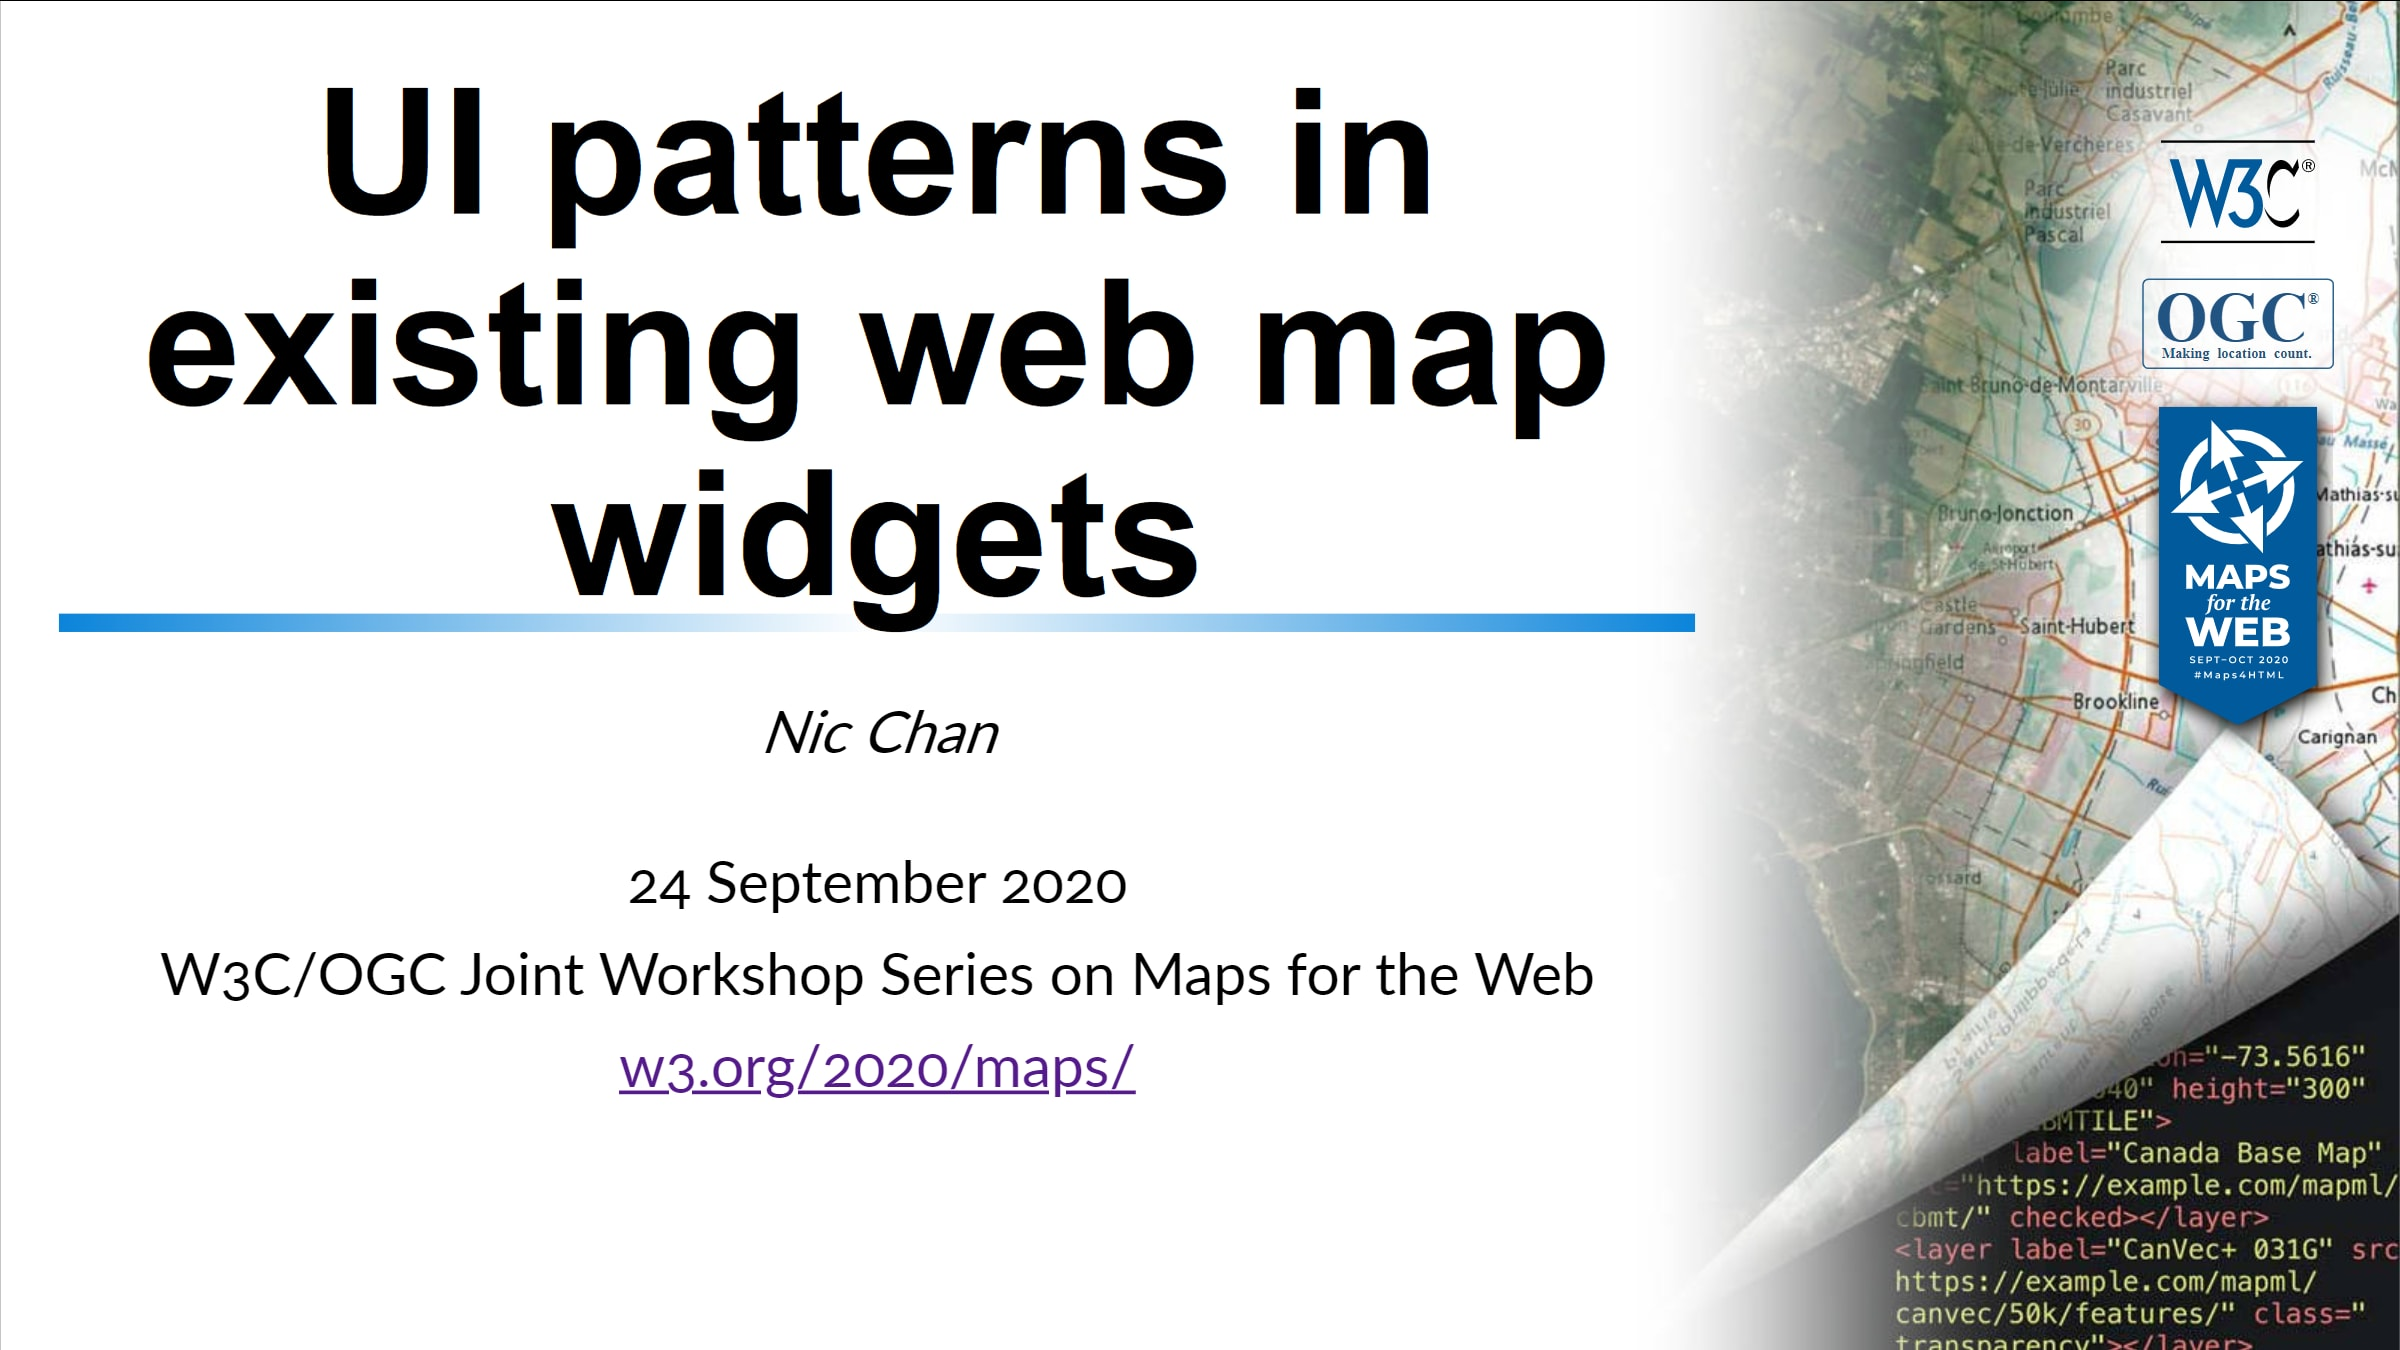 UI Patterns in existing web maps widget presentation slides cover page